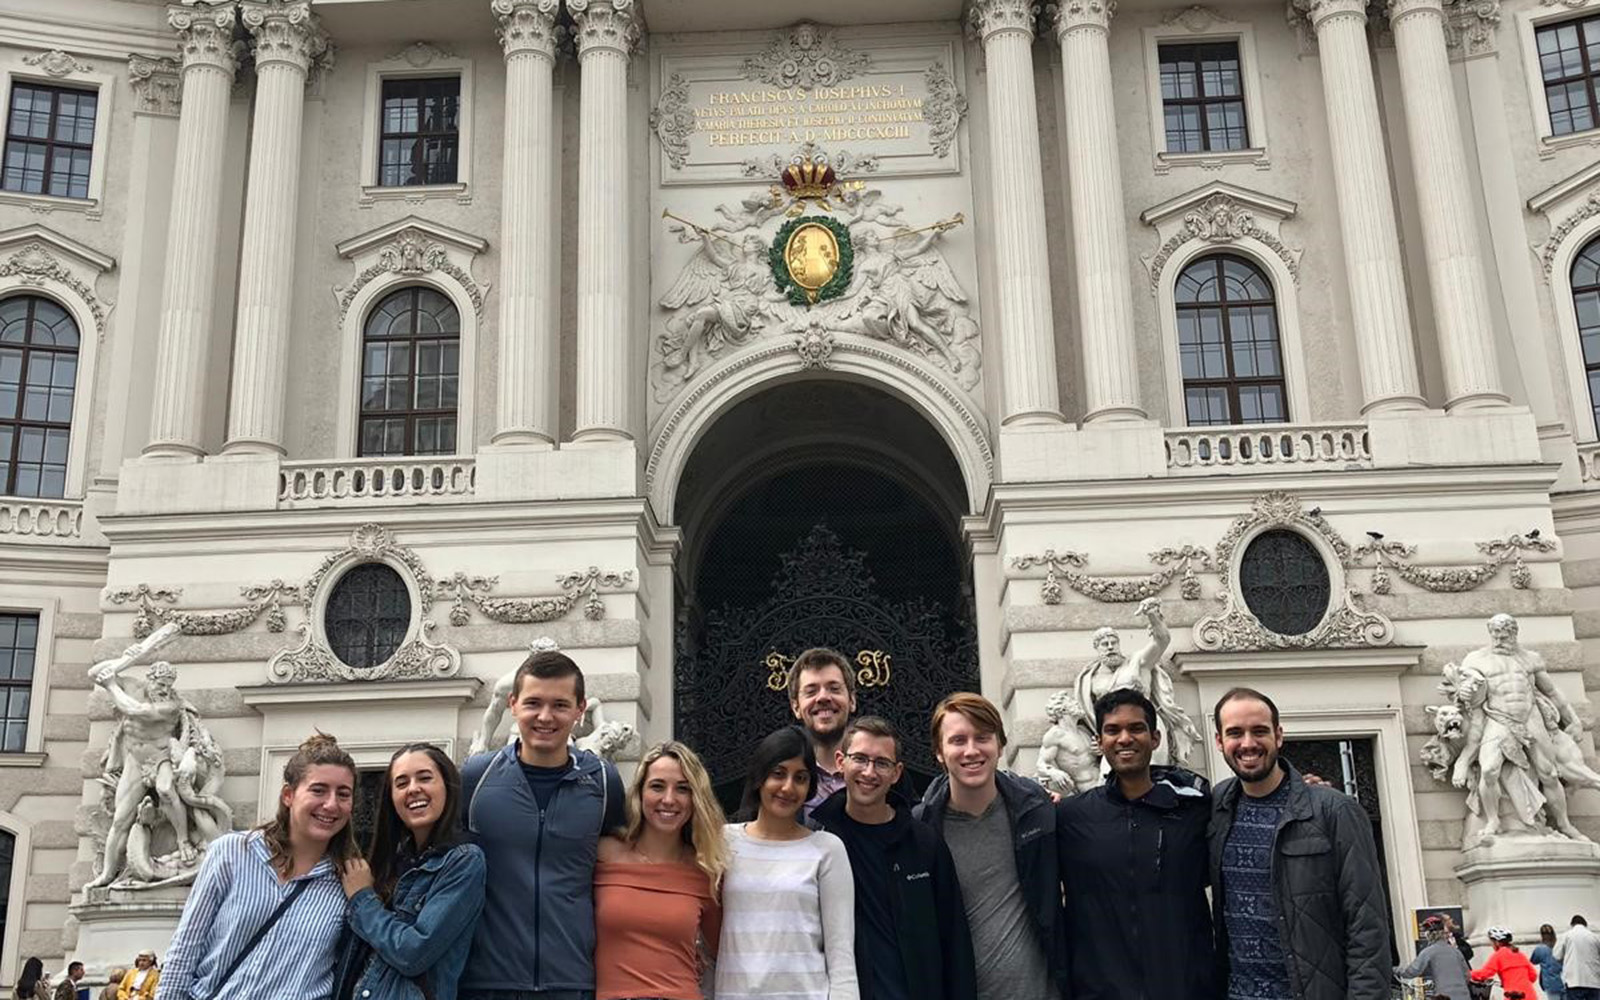 Kasia and her travel companions posing outside the Hofburg in Vienna, Austria (Kasia Kolc / UConn School of Business)